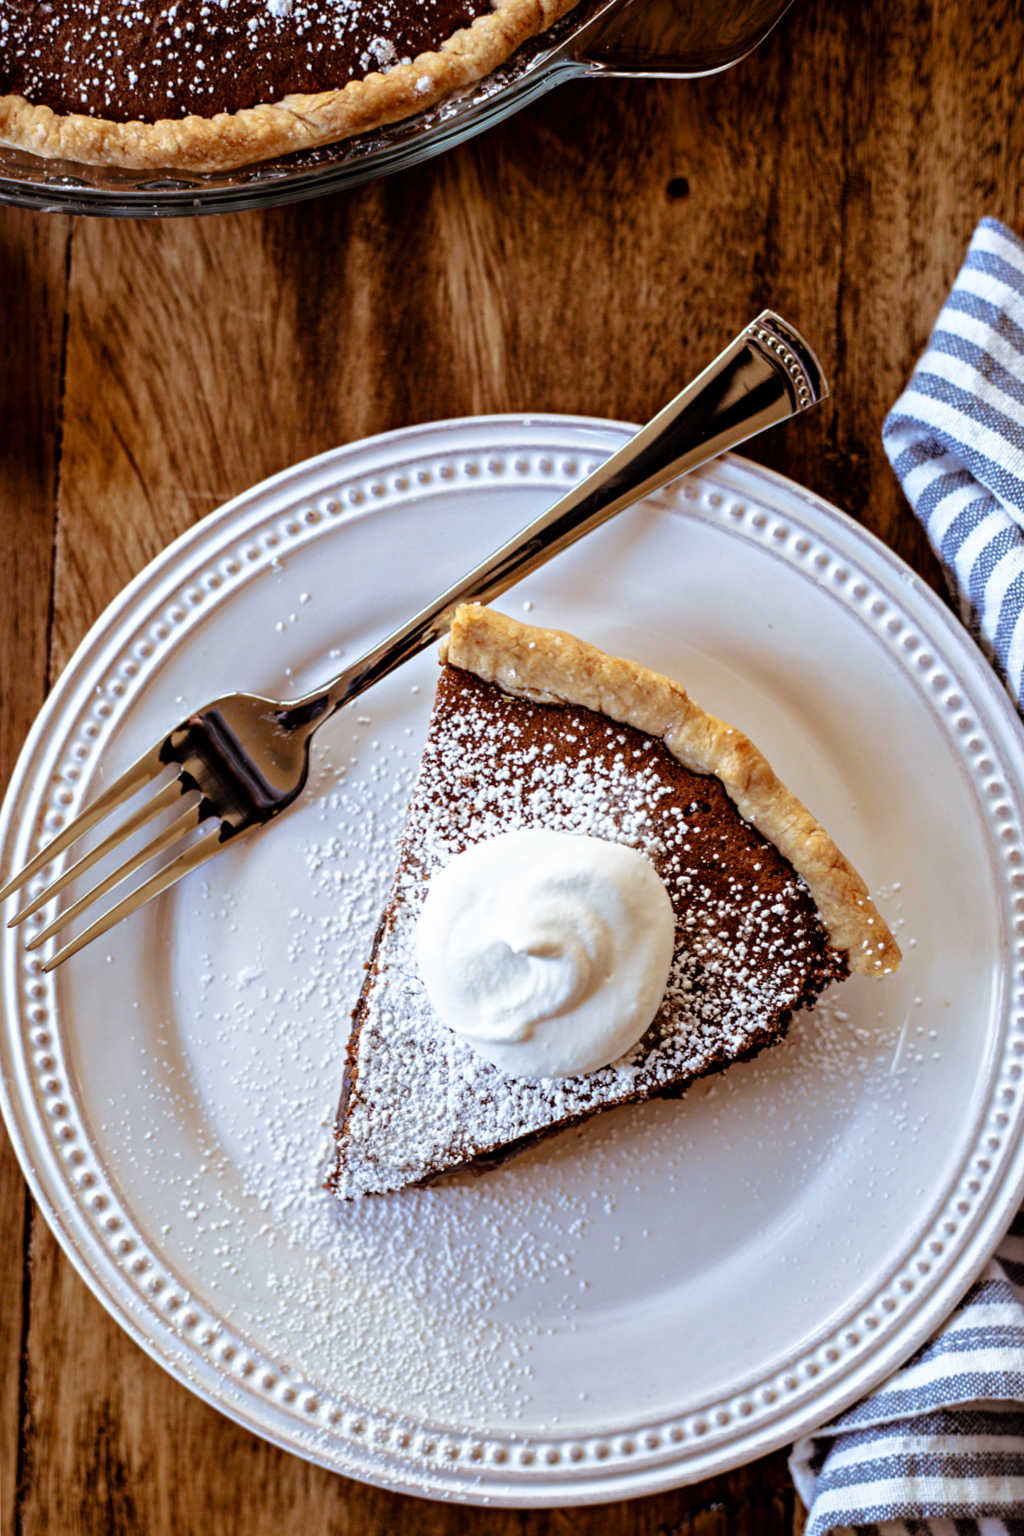 a slice of chocolate chess pie on a white plate on a wooden table.